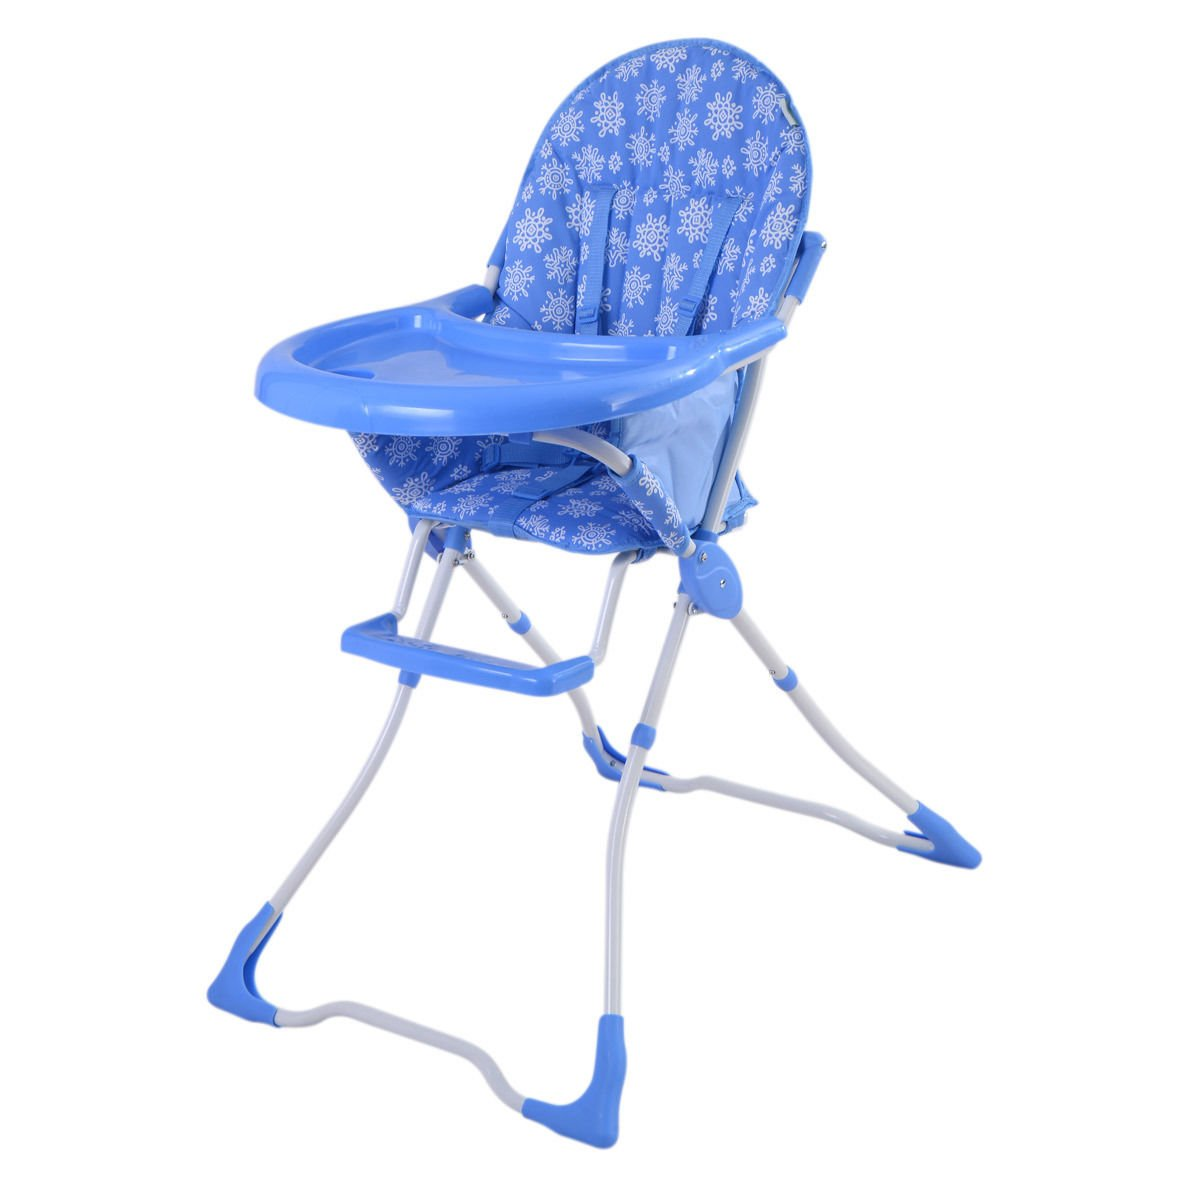 Costzon Adjustable Baby High Chair Infant Toddler Feeding Booster Seat Folding (Removeable Tray, Blue)